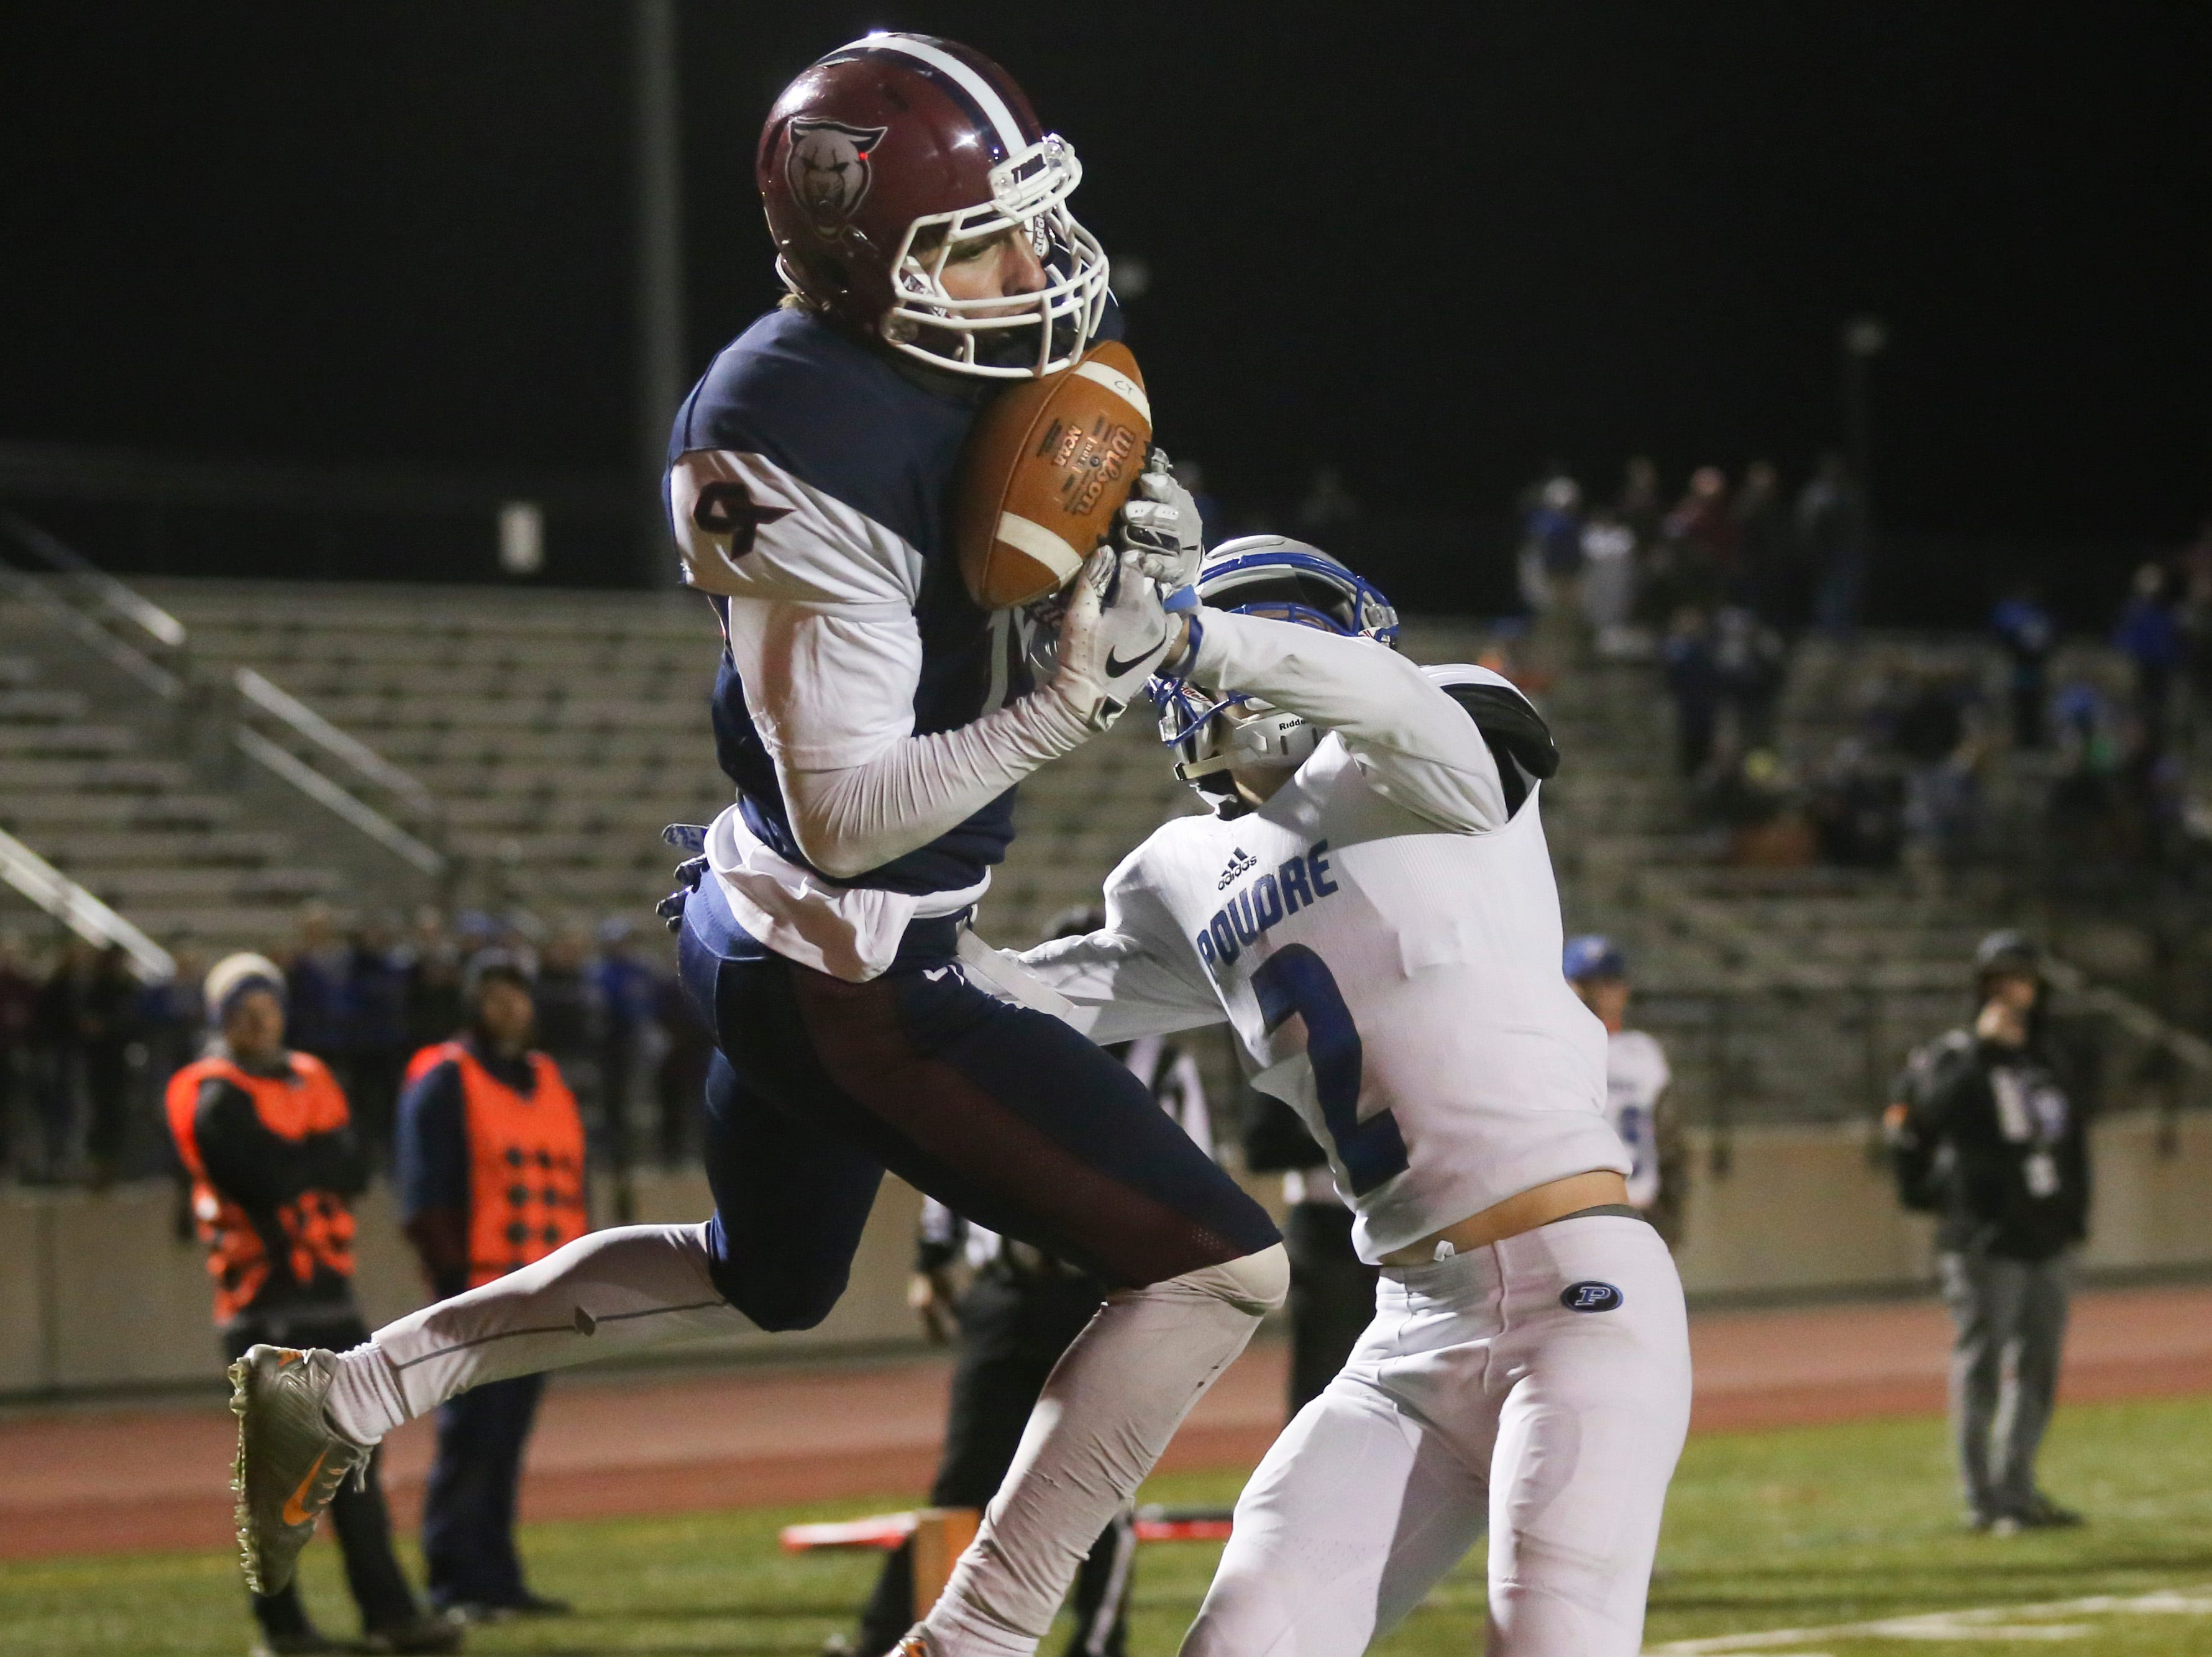 Cherokee Trail High School's Sean Roberts catches a touchdown pass over Poudre High School's Zack Mcvicker during overtime of a state playoff game.